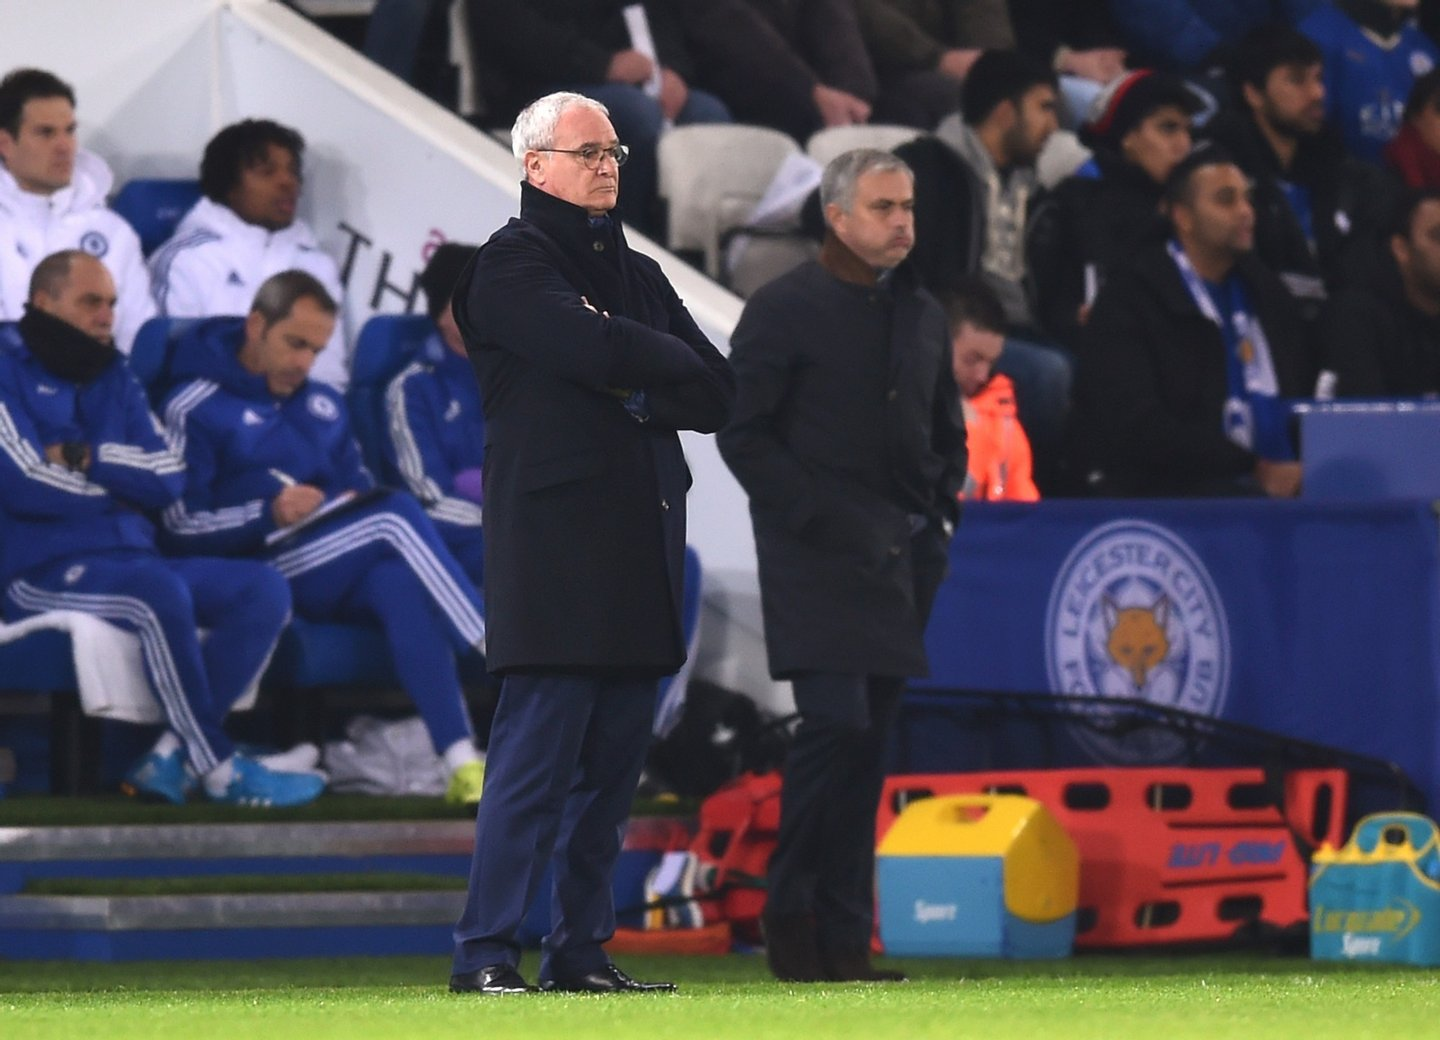 LEICESTER, ENGLAND - DECEMBER 14: (l-R) Claudio Rainieri the manager of Leicester City and Jose Mourinho the manager of Chelsea look on during the Barclays Premier League match between Leicester City and Chelsea at the King Power Stadium on December14, 2015 in Leicester, United Kingdom. (Photo by Michael Regan/Getty Images)